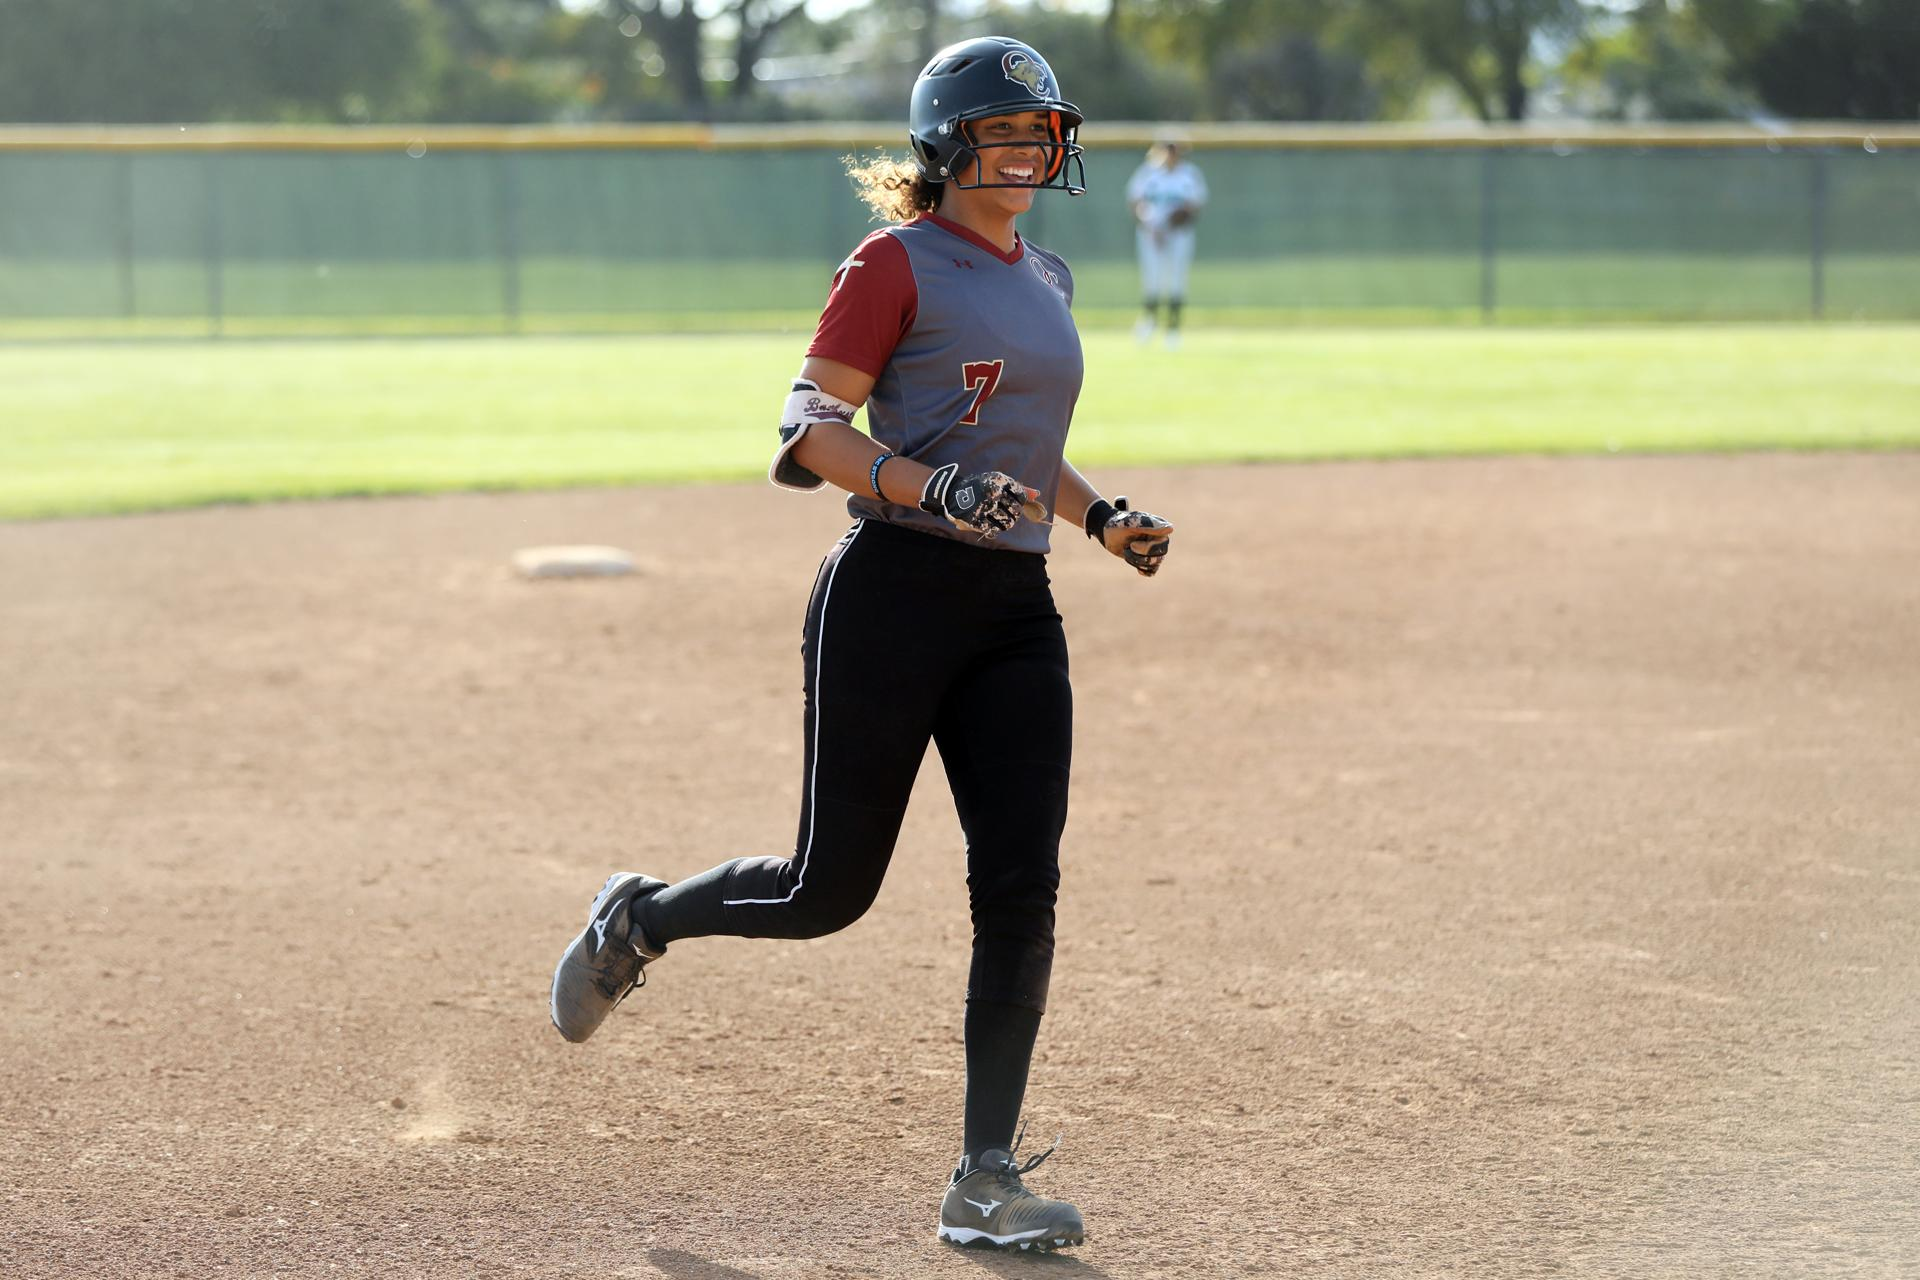 FOR FUTURE TARA SULLIVAN STORY Maya Brady, of Oaks Christian, rounds the bases after hitting a home run during a game against Thousand Oaks High School in Thousand Oaks, Calif. on Tuesday, March 26, 2019. (Matt Sayles for The Boston Globe)